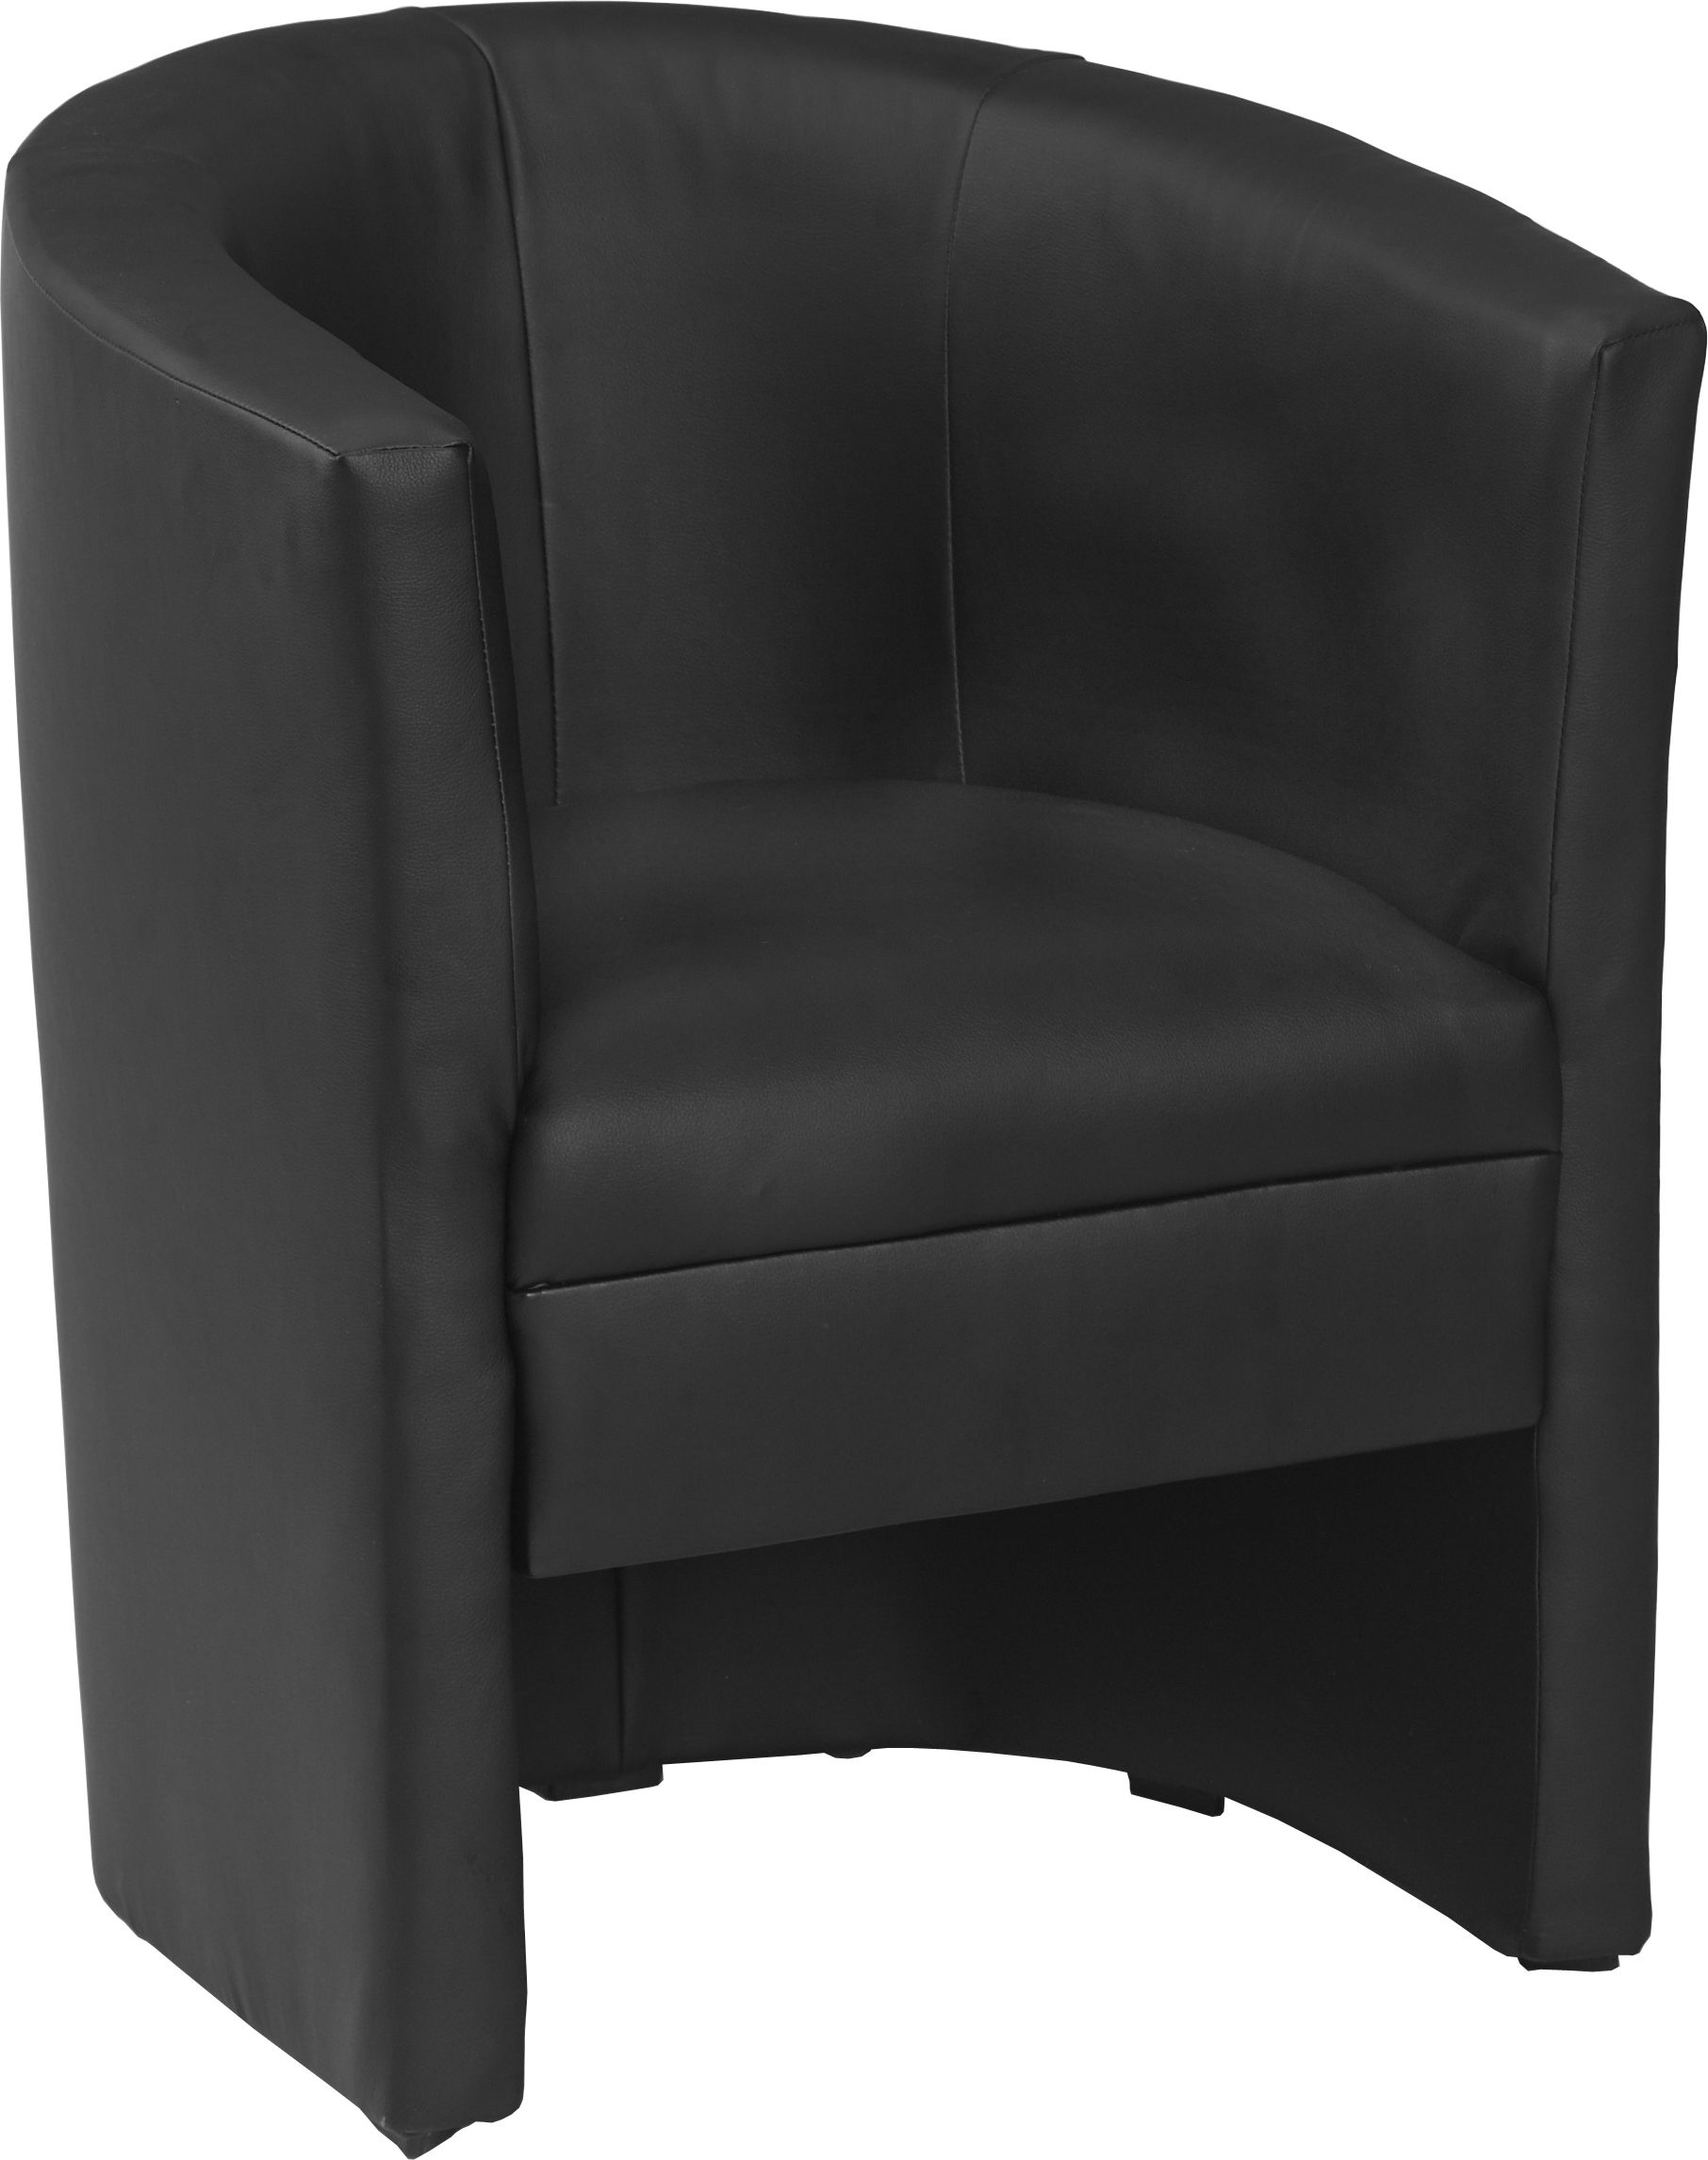 lounge sessel cocktailsessel lucy 2 schwarz g nstig kaufen. Black Bedroom Furniture Sets. Home Design Ideas